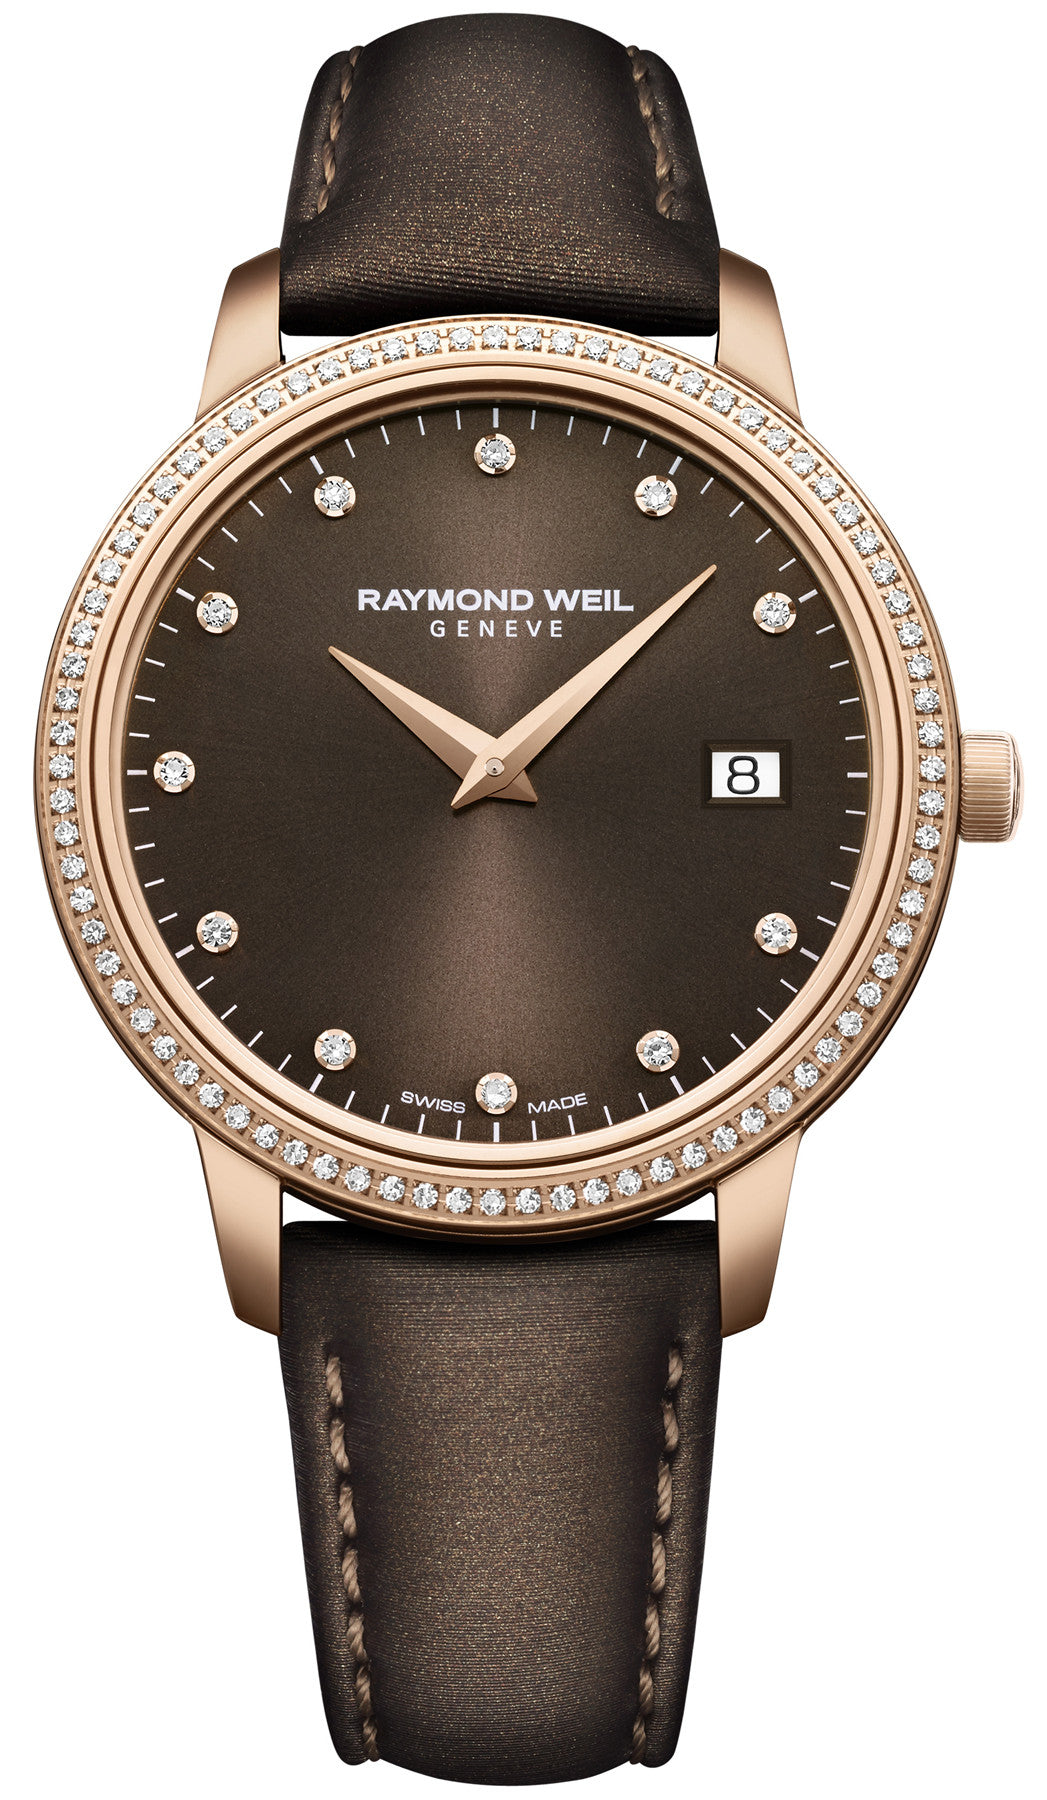 Raymond Weil Watch Toccata Nicola Benedetti Limited Edition D